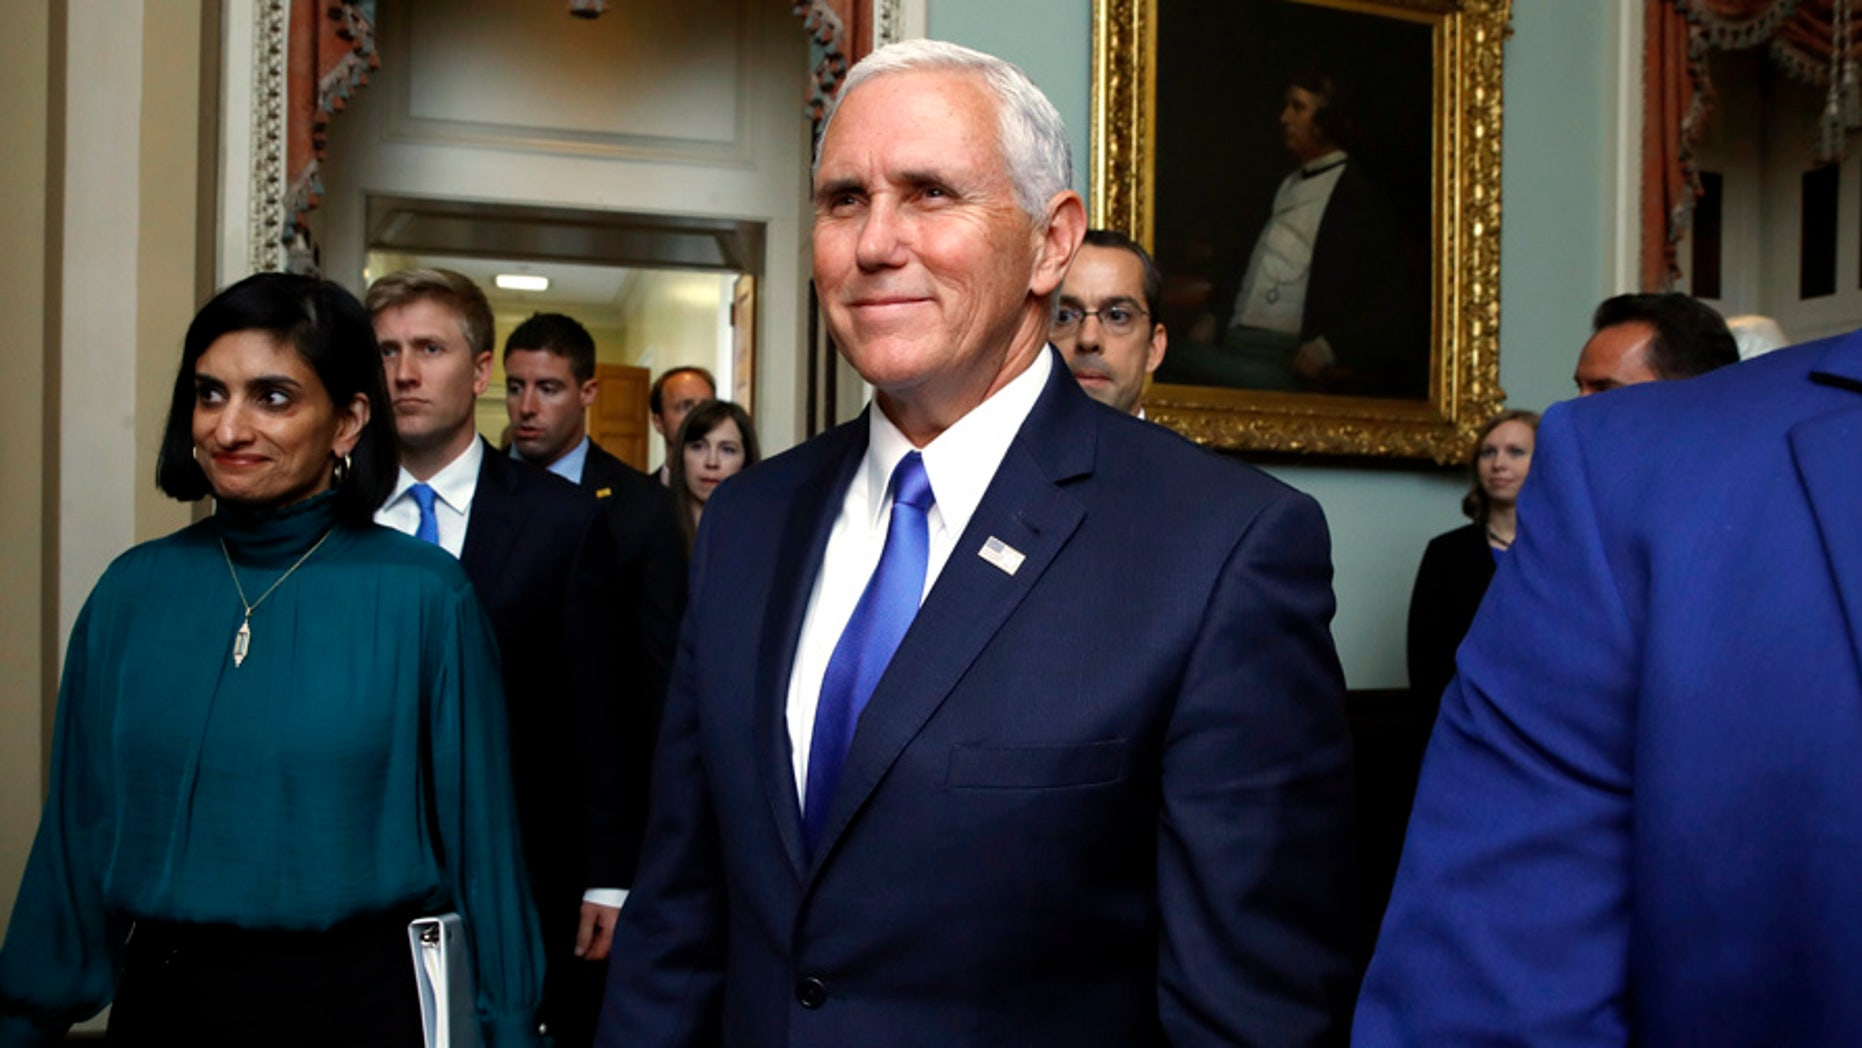 Vice President Mike Pence leaves a meeting with Republican senators, Tuesday, Sept. 19, 2017, on Capitol Hill in Washington. (AP Photo/Jacquelyn Martin)